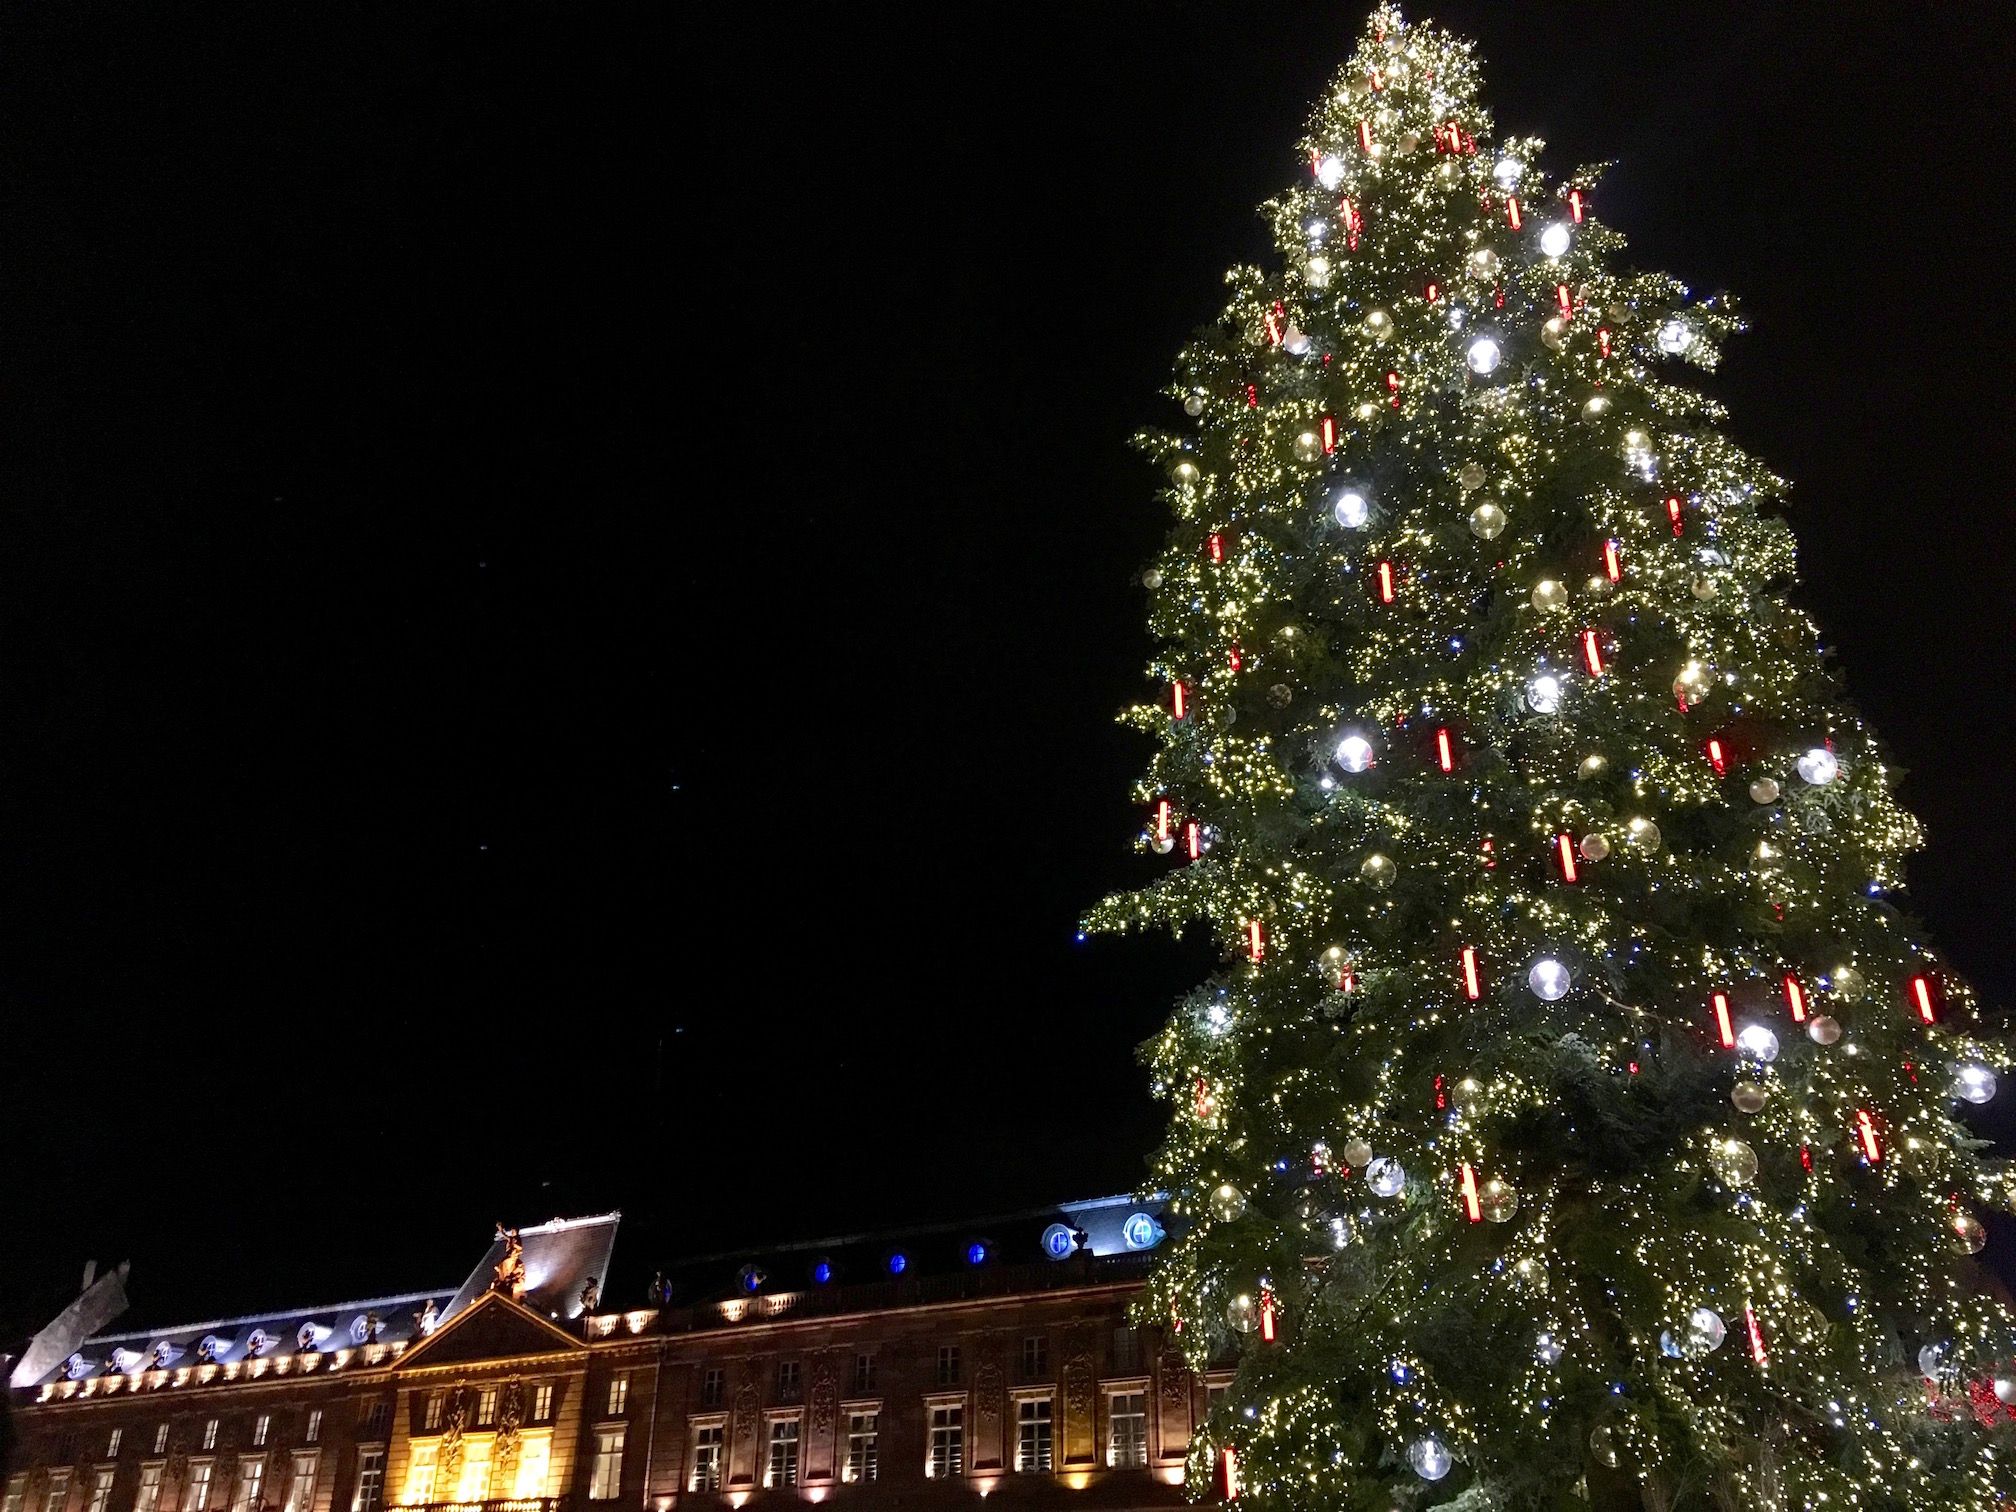 The grand Christmas tree at Place Kléber